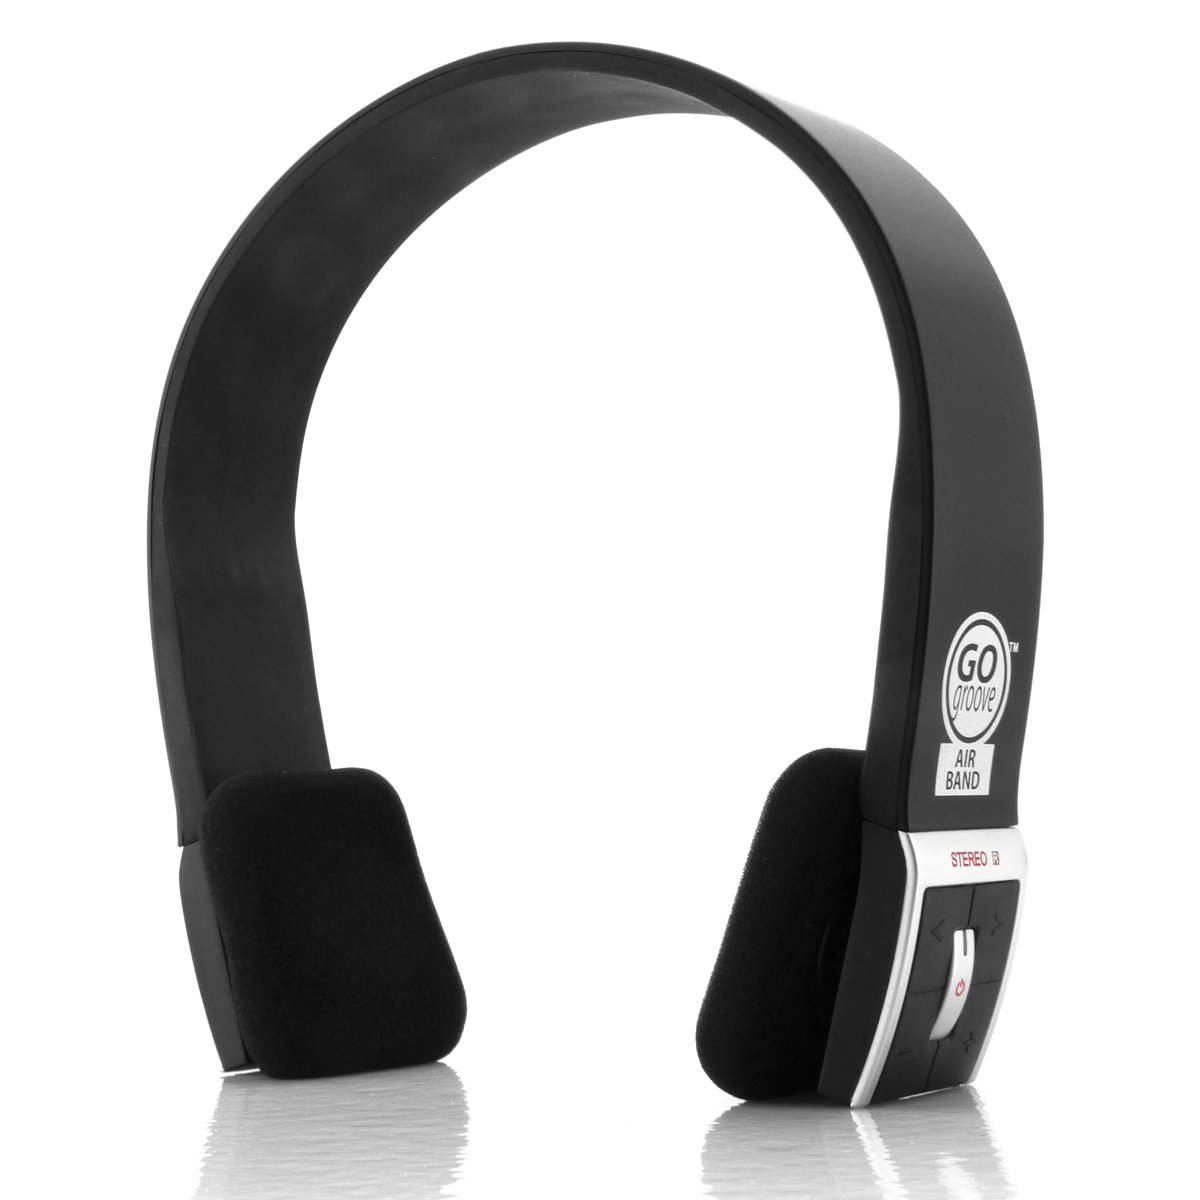 Gogroove Airband Wireless Bluetooth Stereo Headphones Quatro 2 Super Loud 20 Usb Speaker By Sonicgear Green With Microphone And Onboard Controls Compact Adjustable Sleek Headband Design